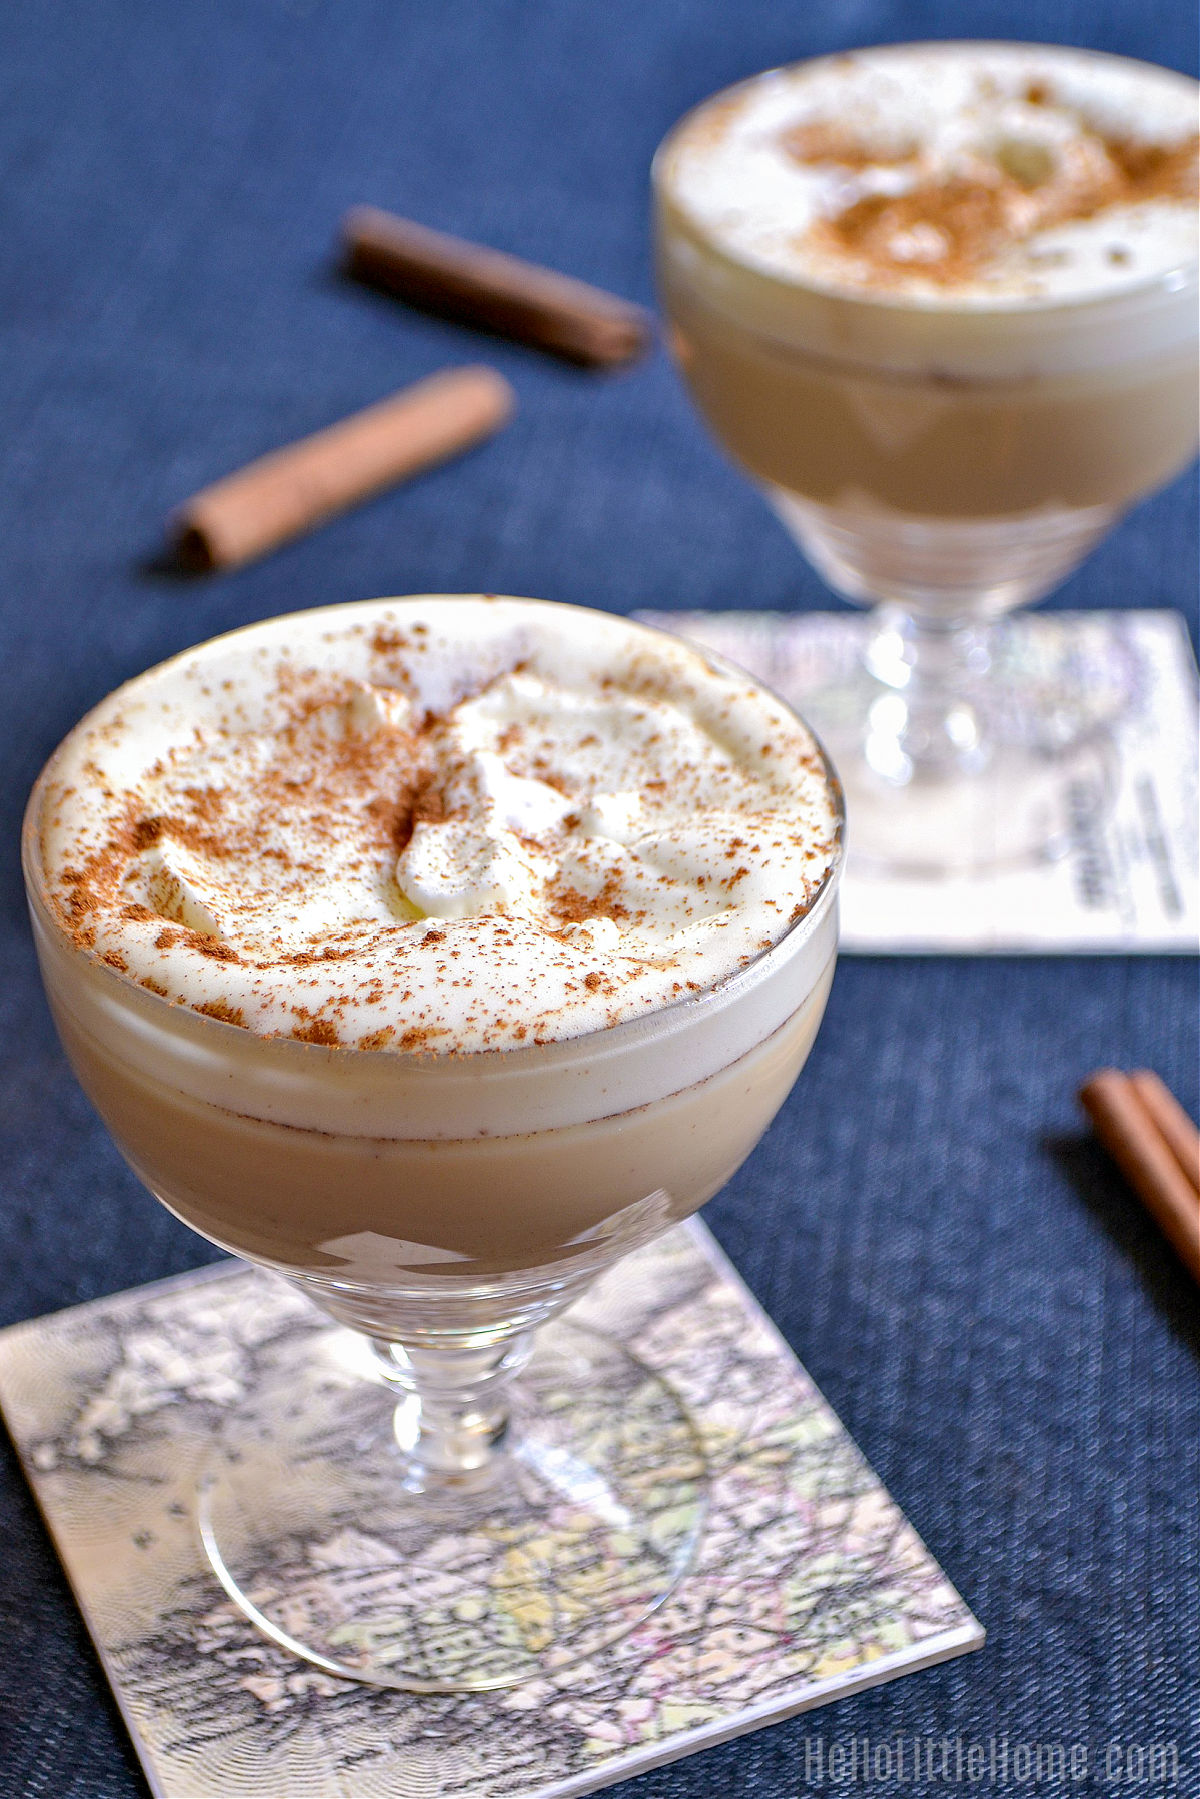 Two Pumpkin Spice Crème drinks on a blue tablecloth.